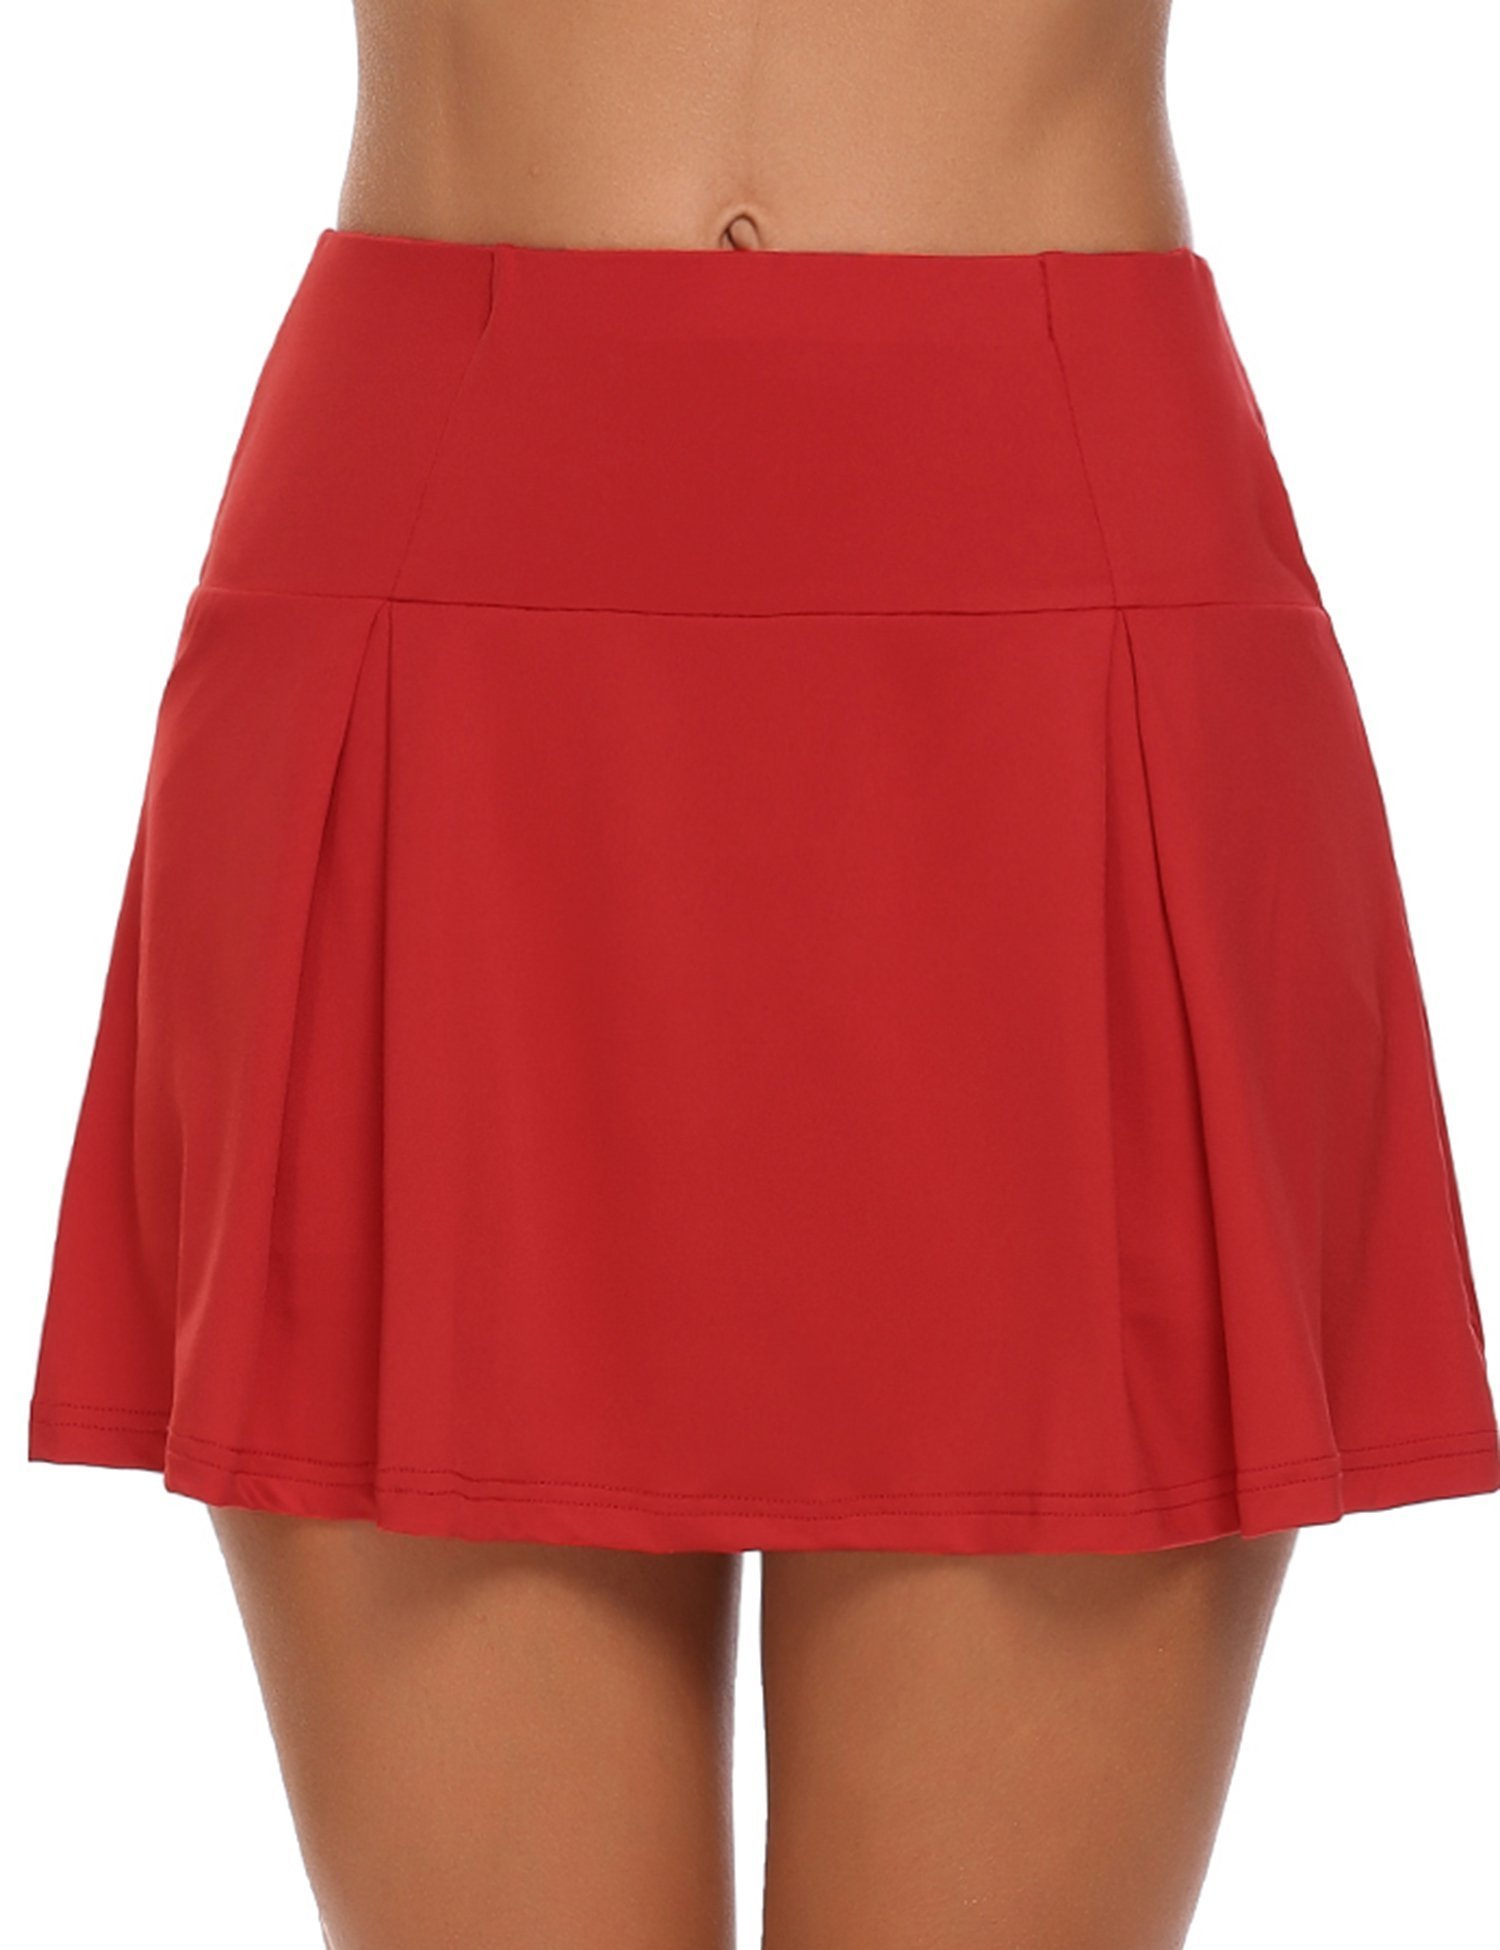 Zeagoo Women's Running Skirt Tennis Skort High Waist Pleated Athletic Shorts, Red, Large